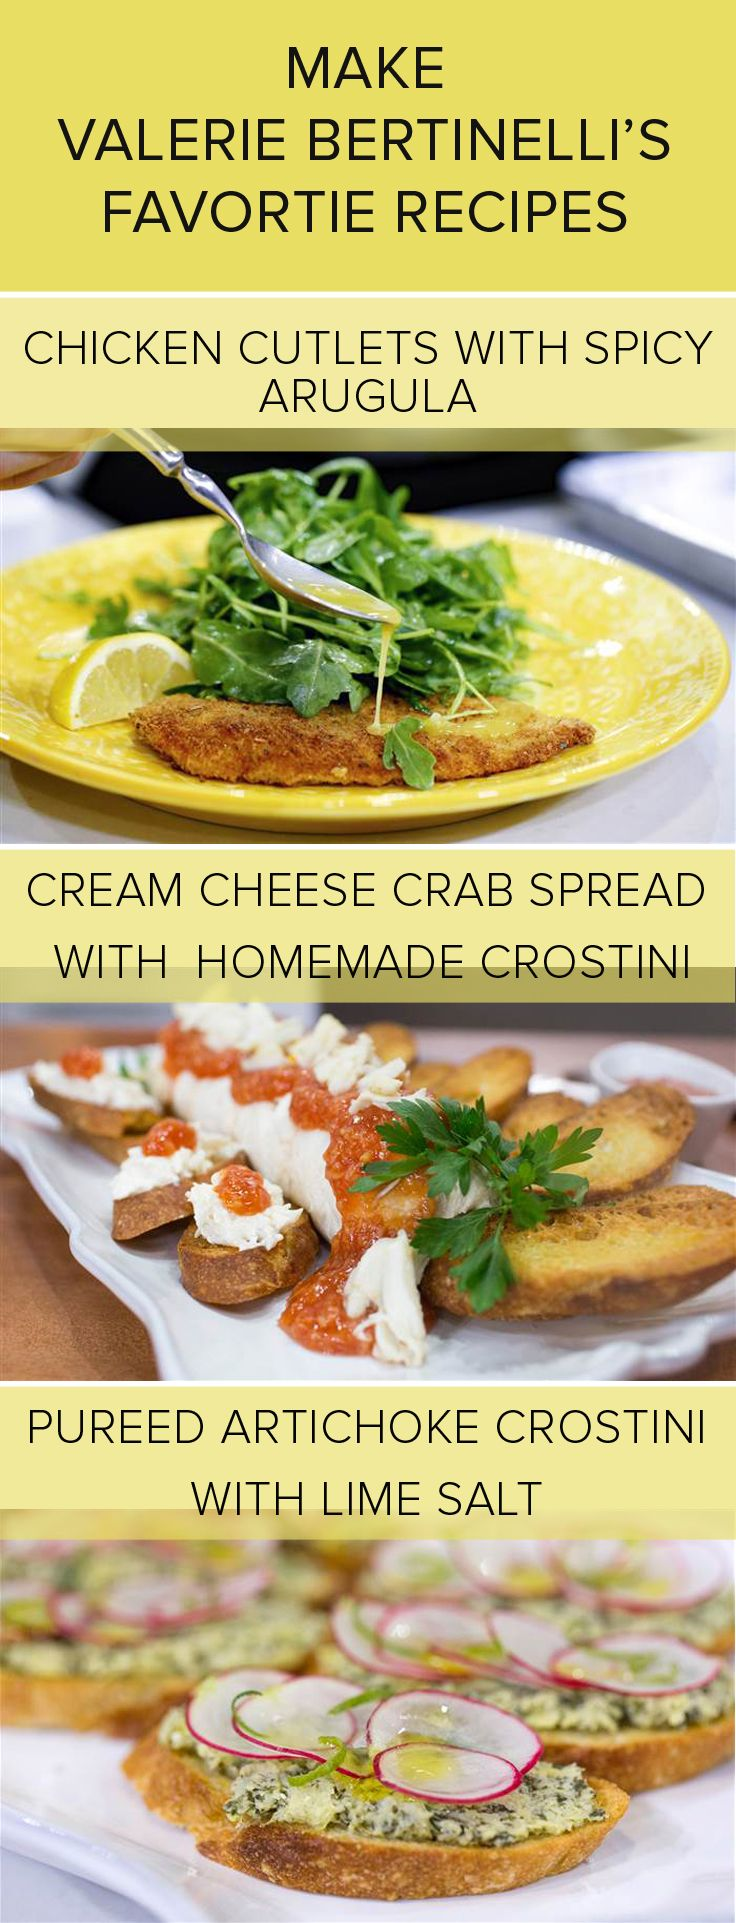 Valerie Bertinelli serves up fave recipes: Chicken cutlets, crostini, crab dip